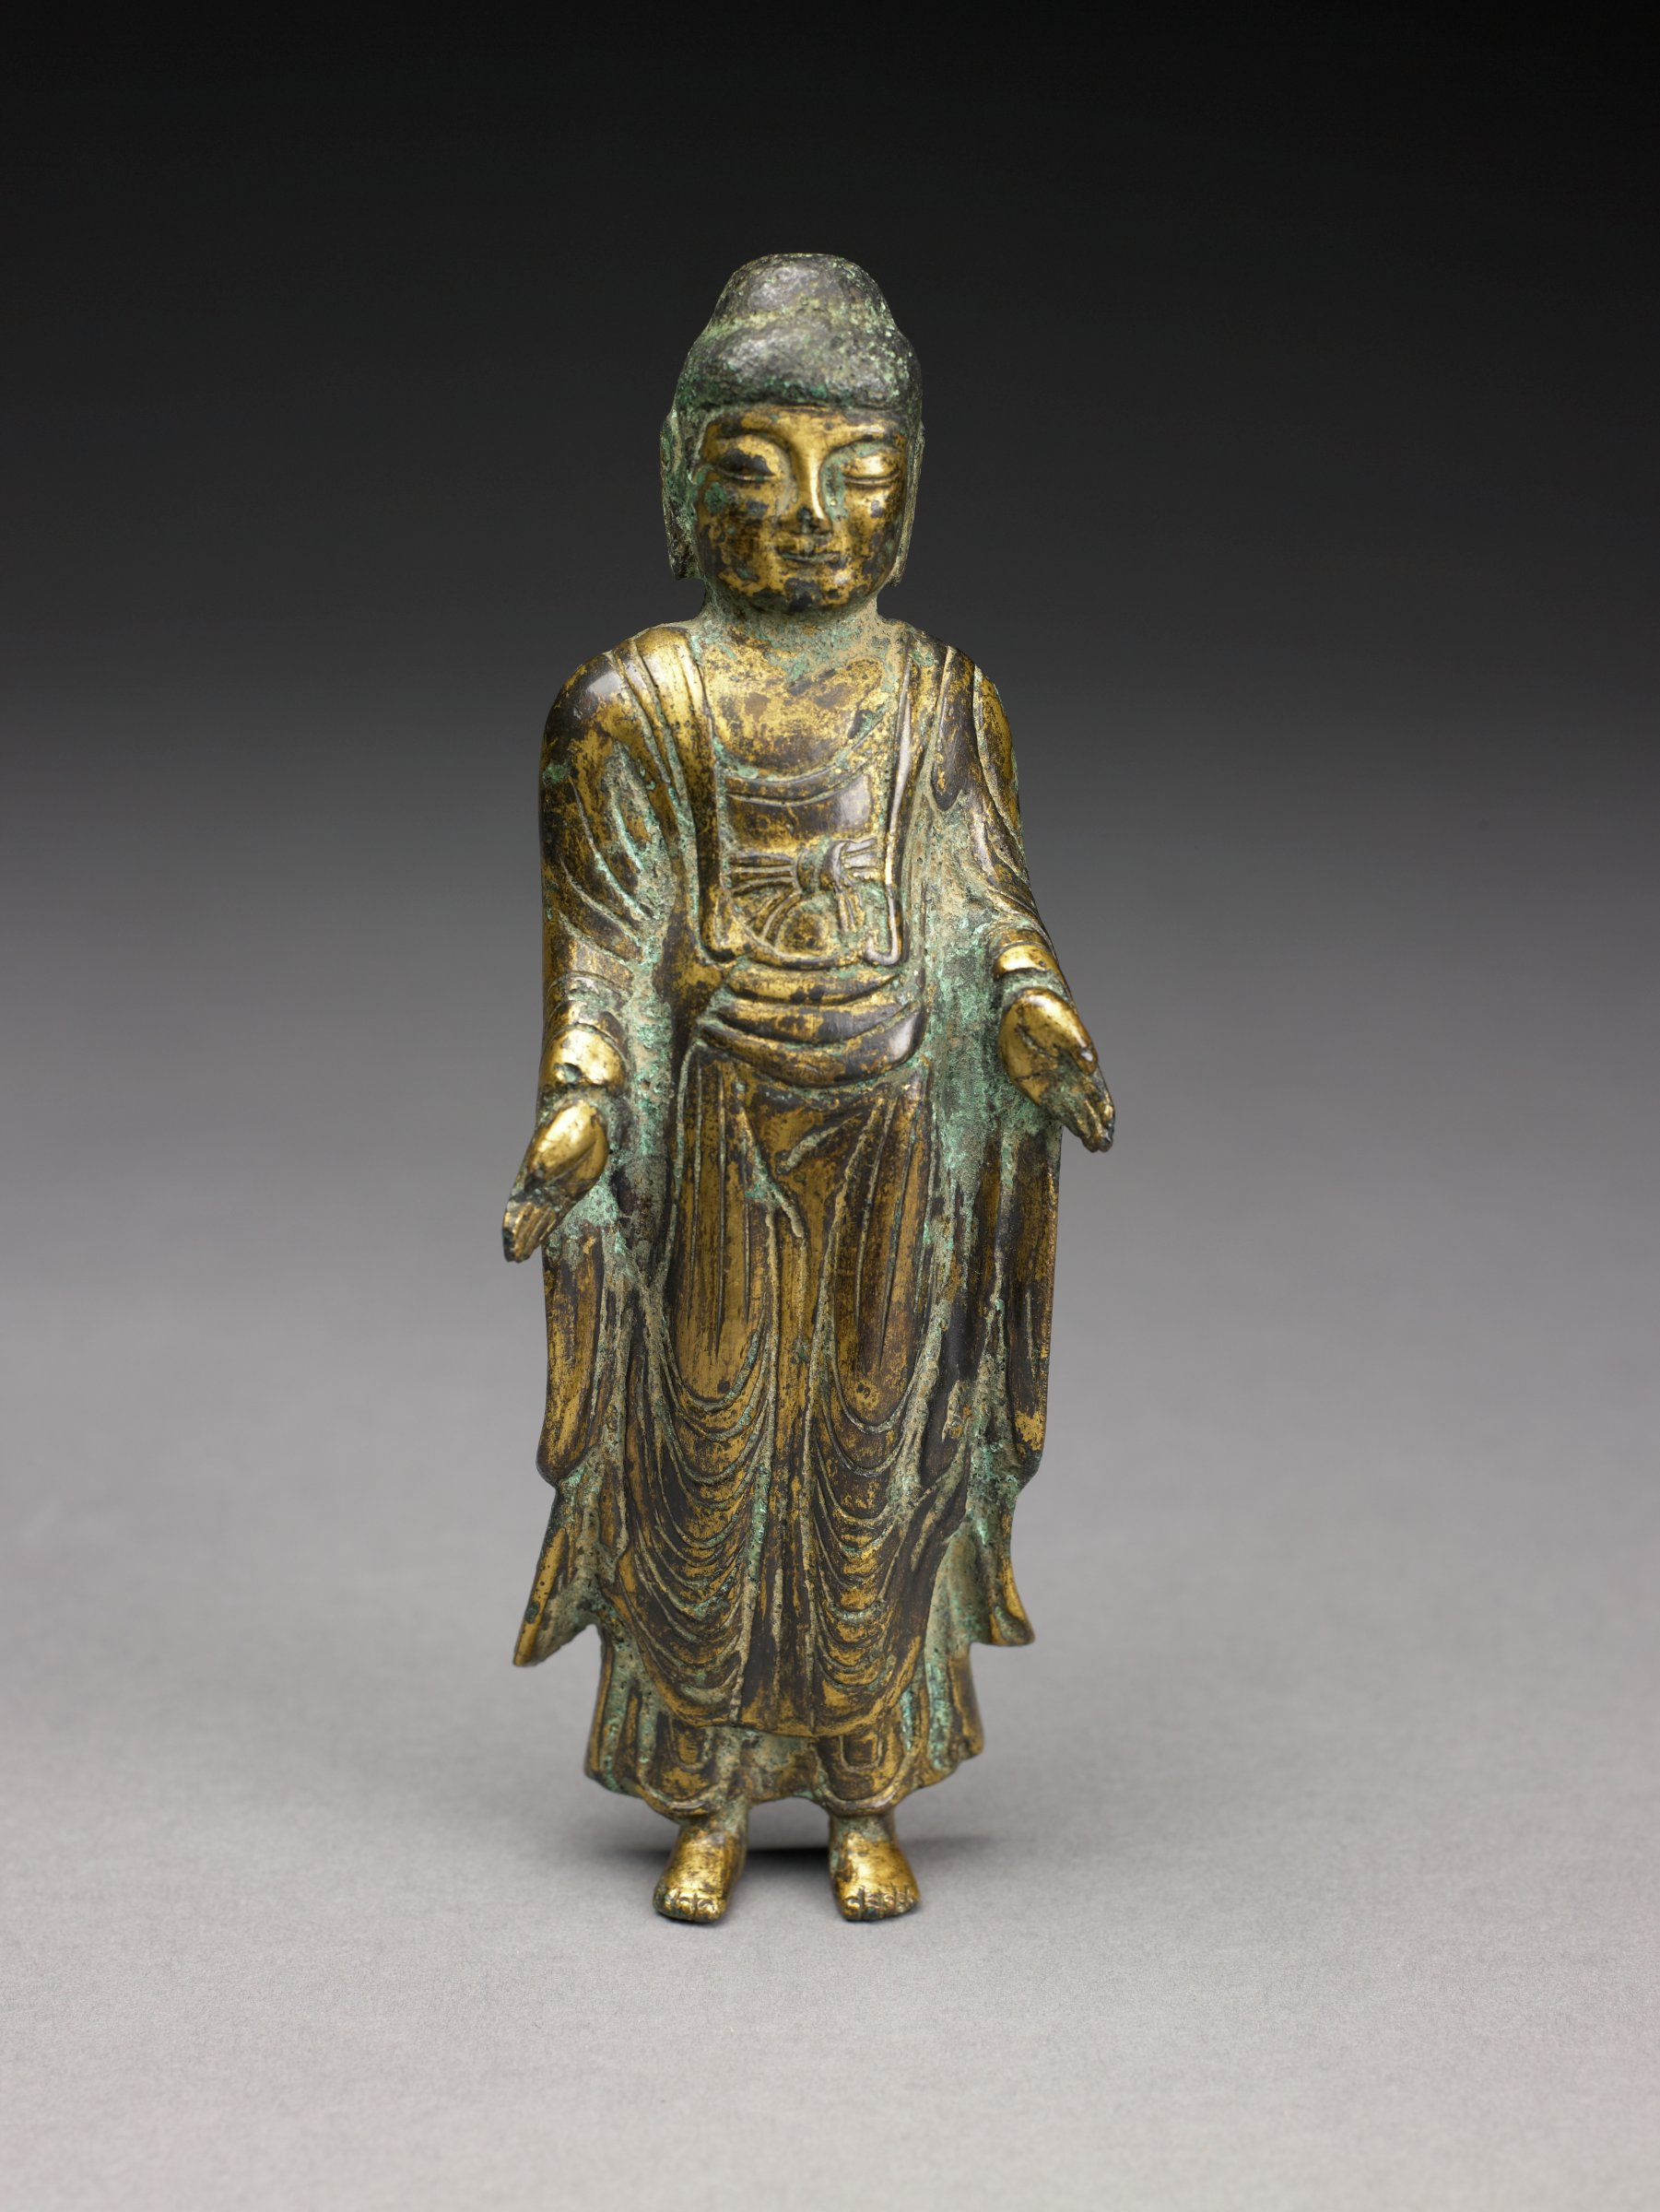 Standing image of Buddha, base missing, two long tangs in feet. Back is hollowed with protruding flue(?) or tenon in upper chest. some oxidization